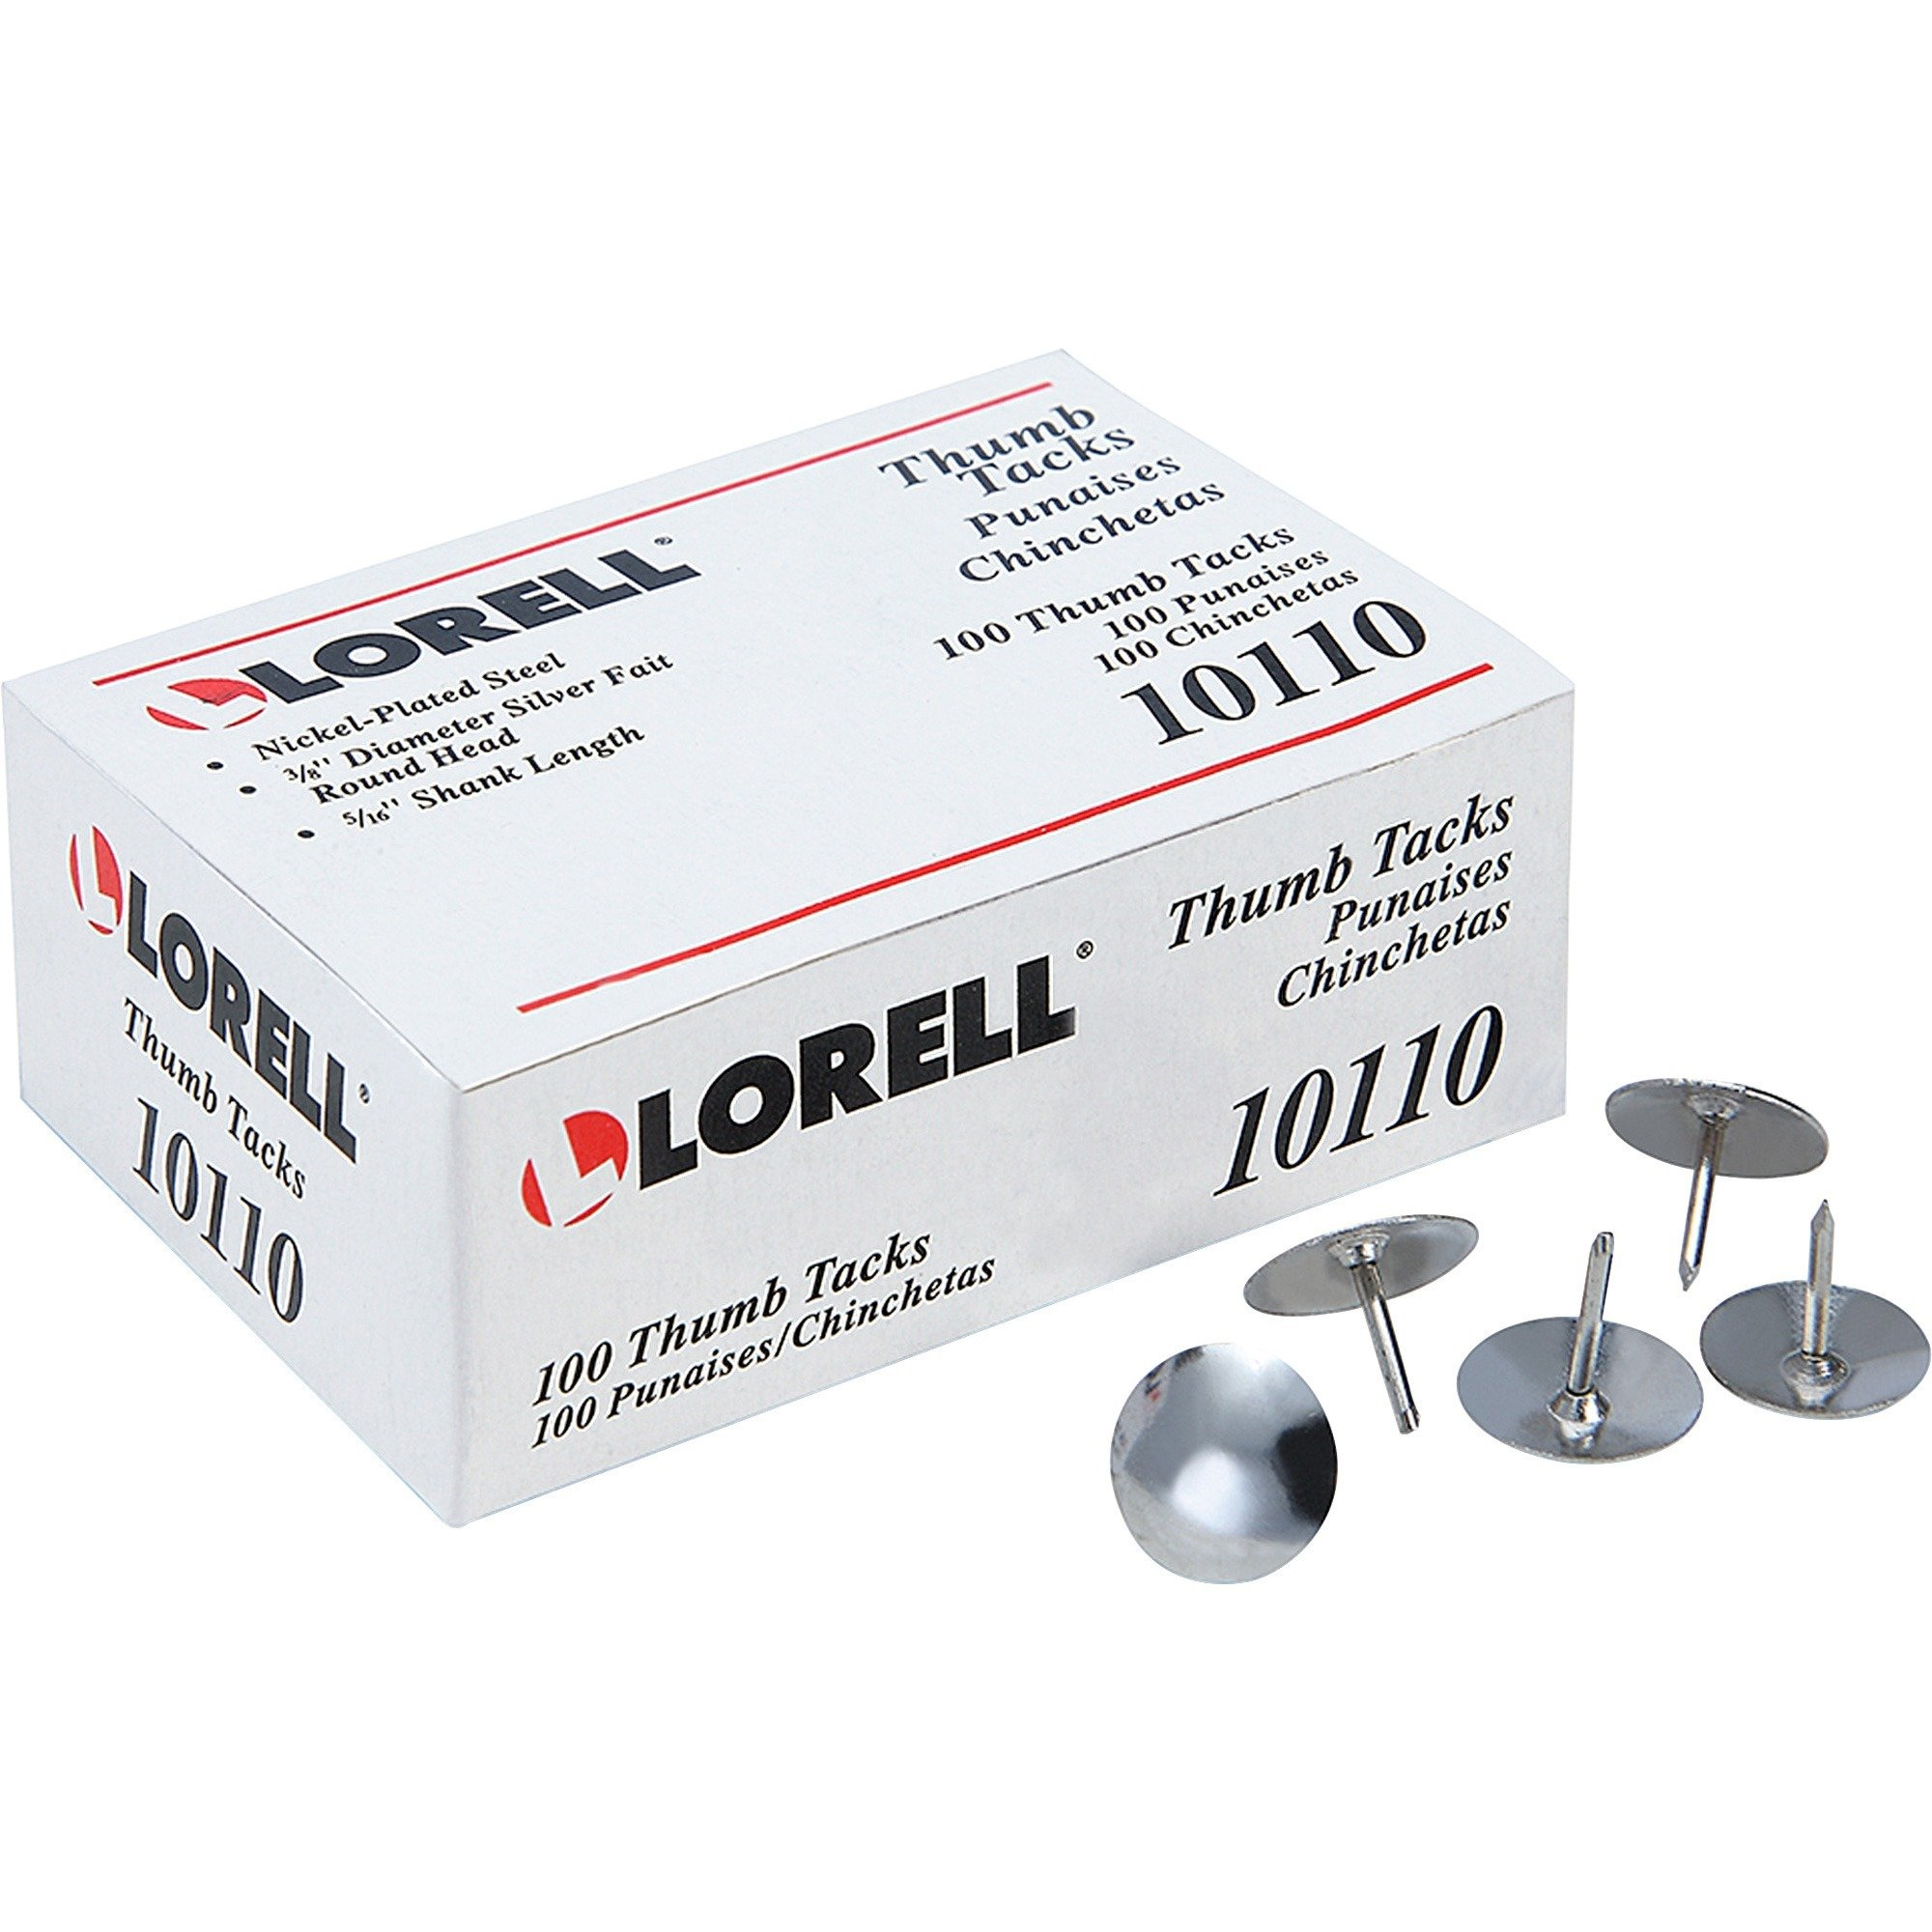 "Lorell 5/16"" Steel Thumb Tacks - 100/Pack"